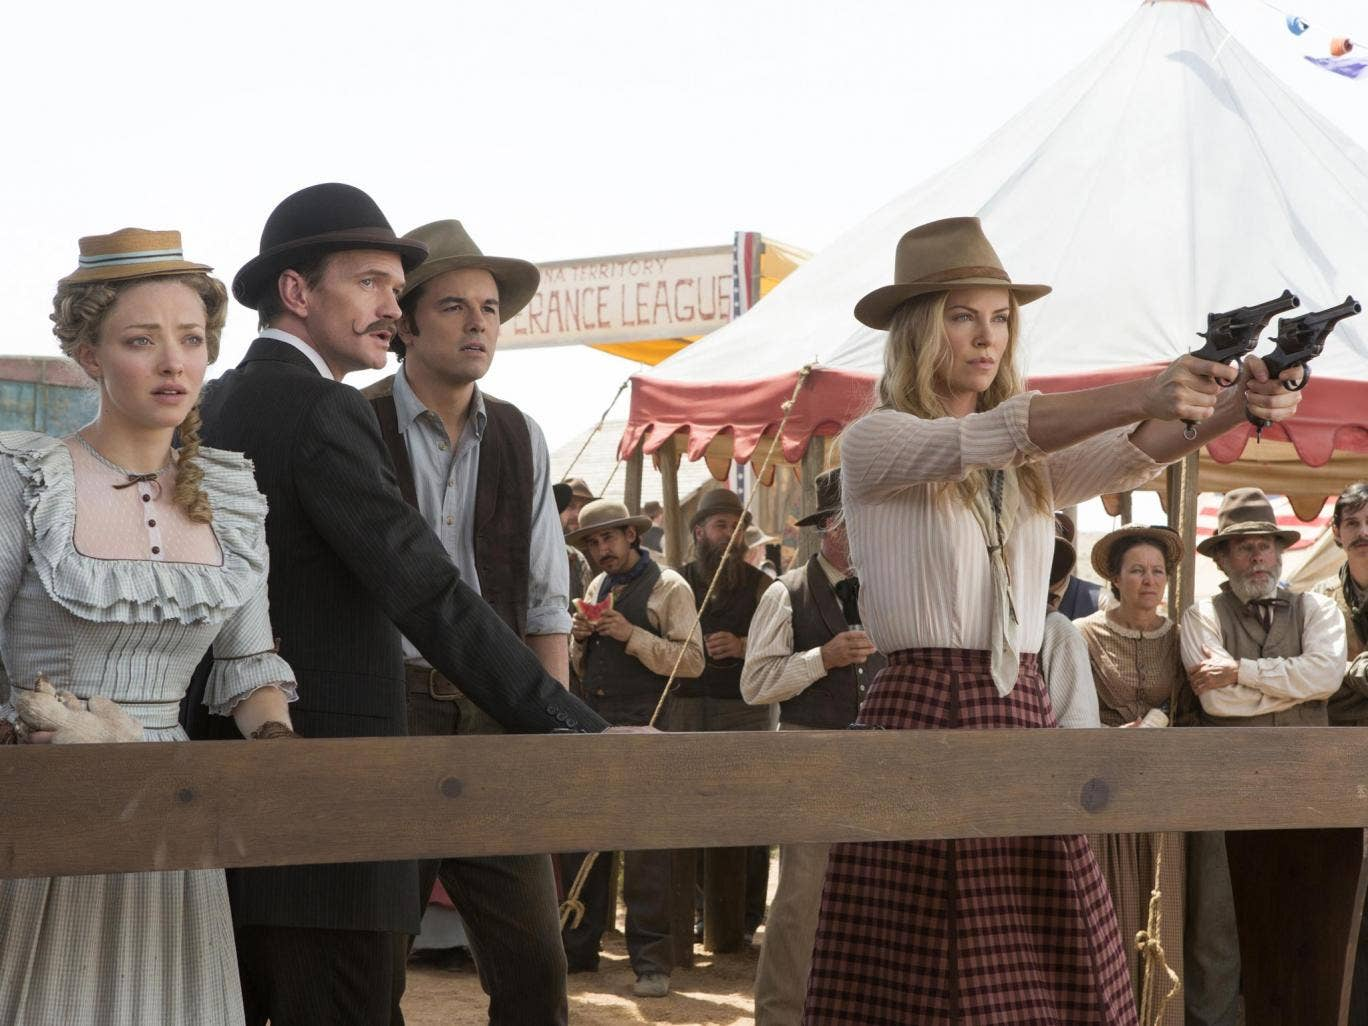 'A Million Ways to Die in the West', with Amanda Seyfried, Neil Patrick Harris, Seth MacFarlane, and Charlize Theron